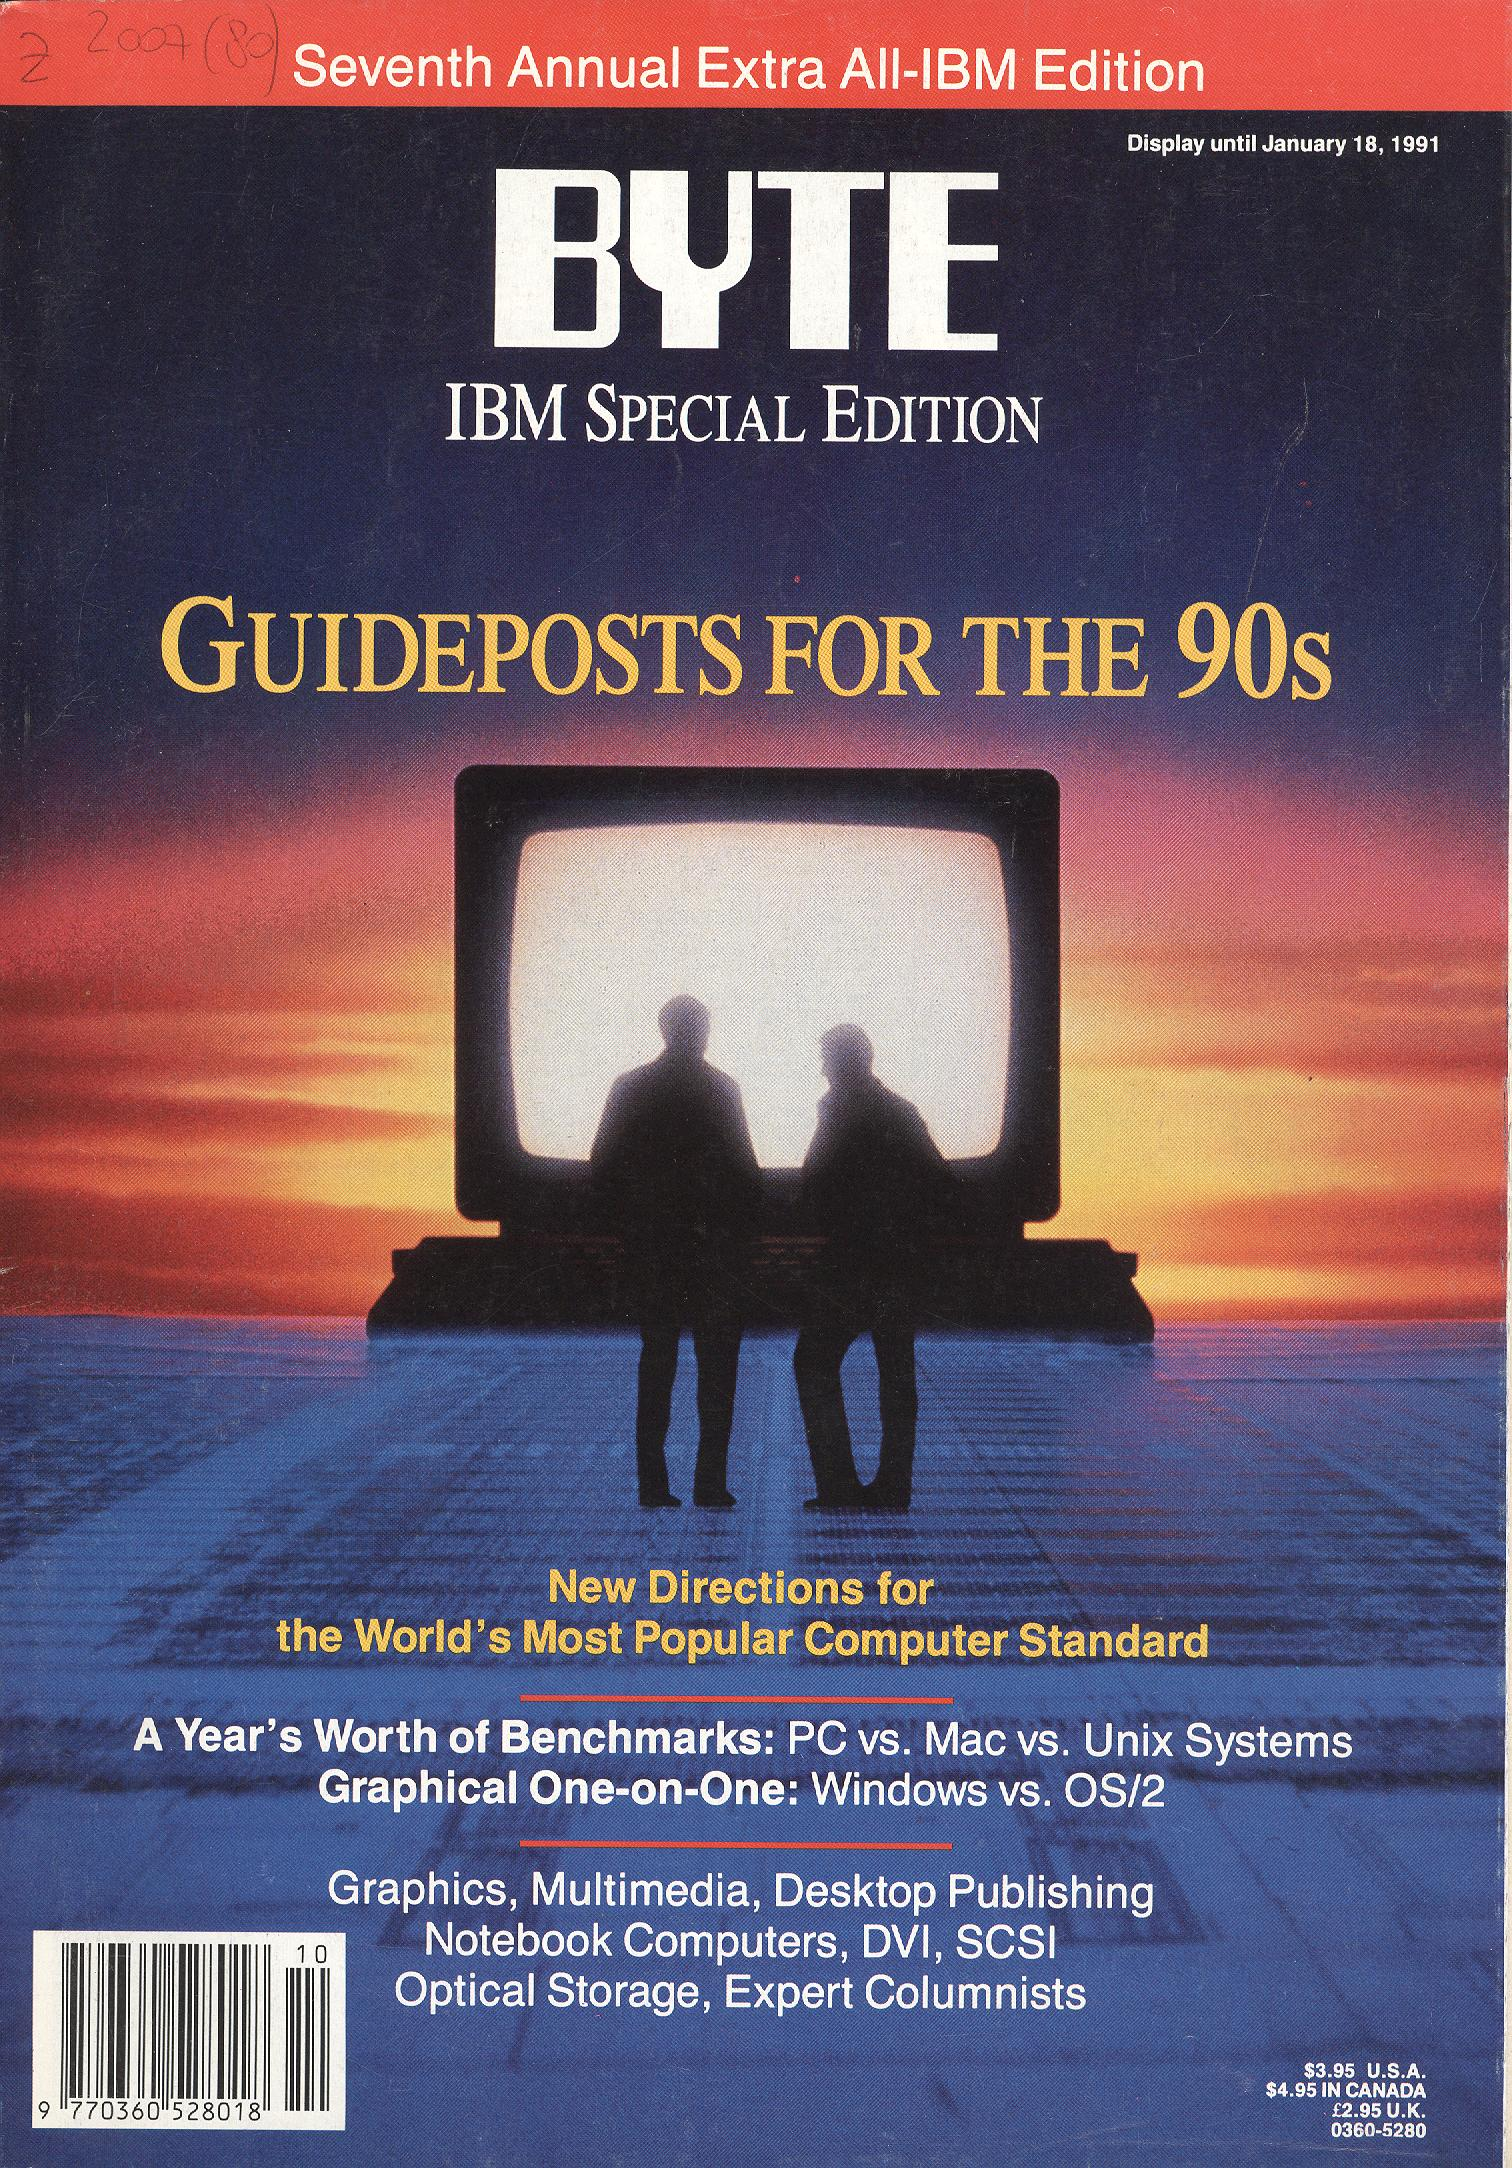 Guideposts for the 90s